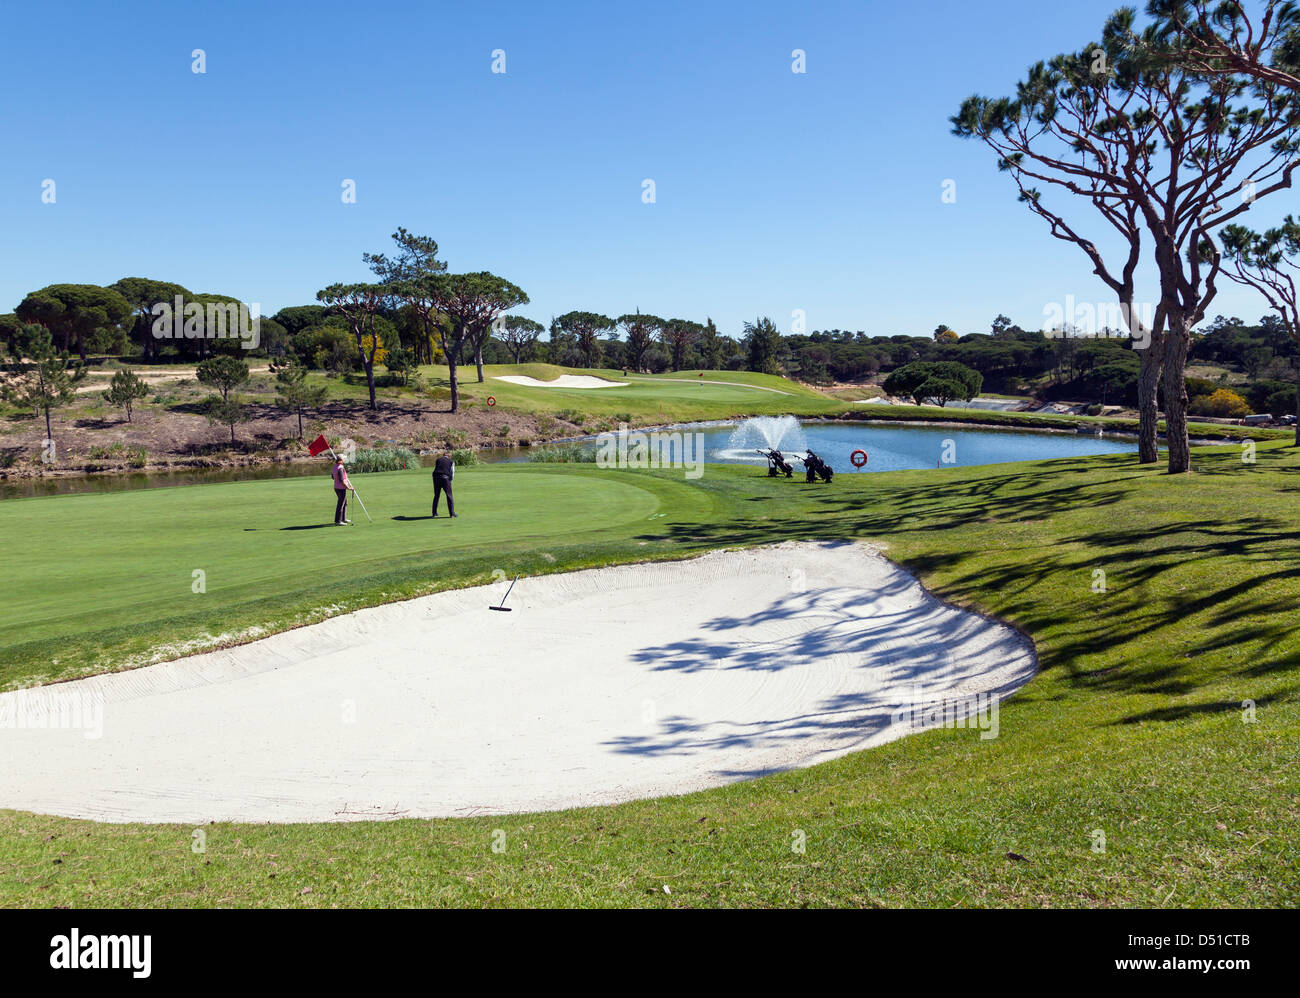 Putting green - Stock Image